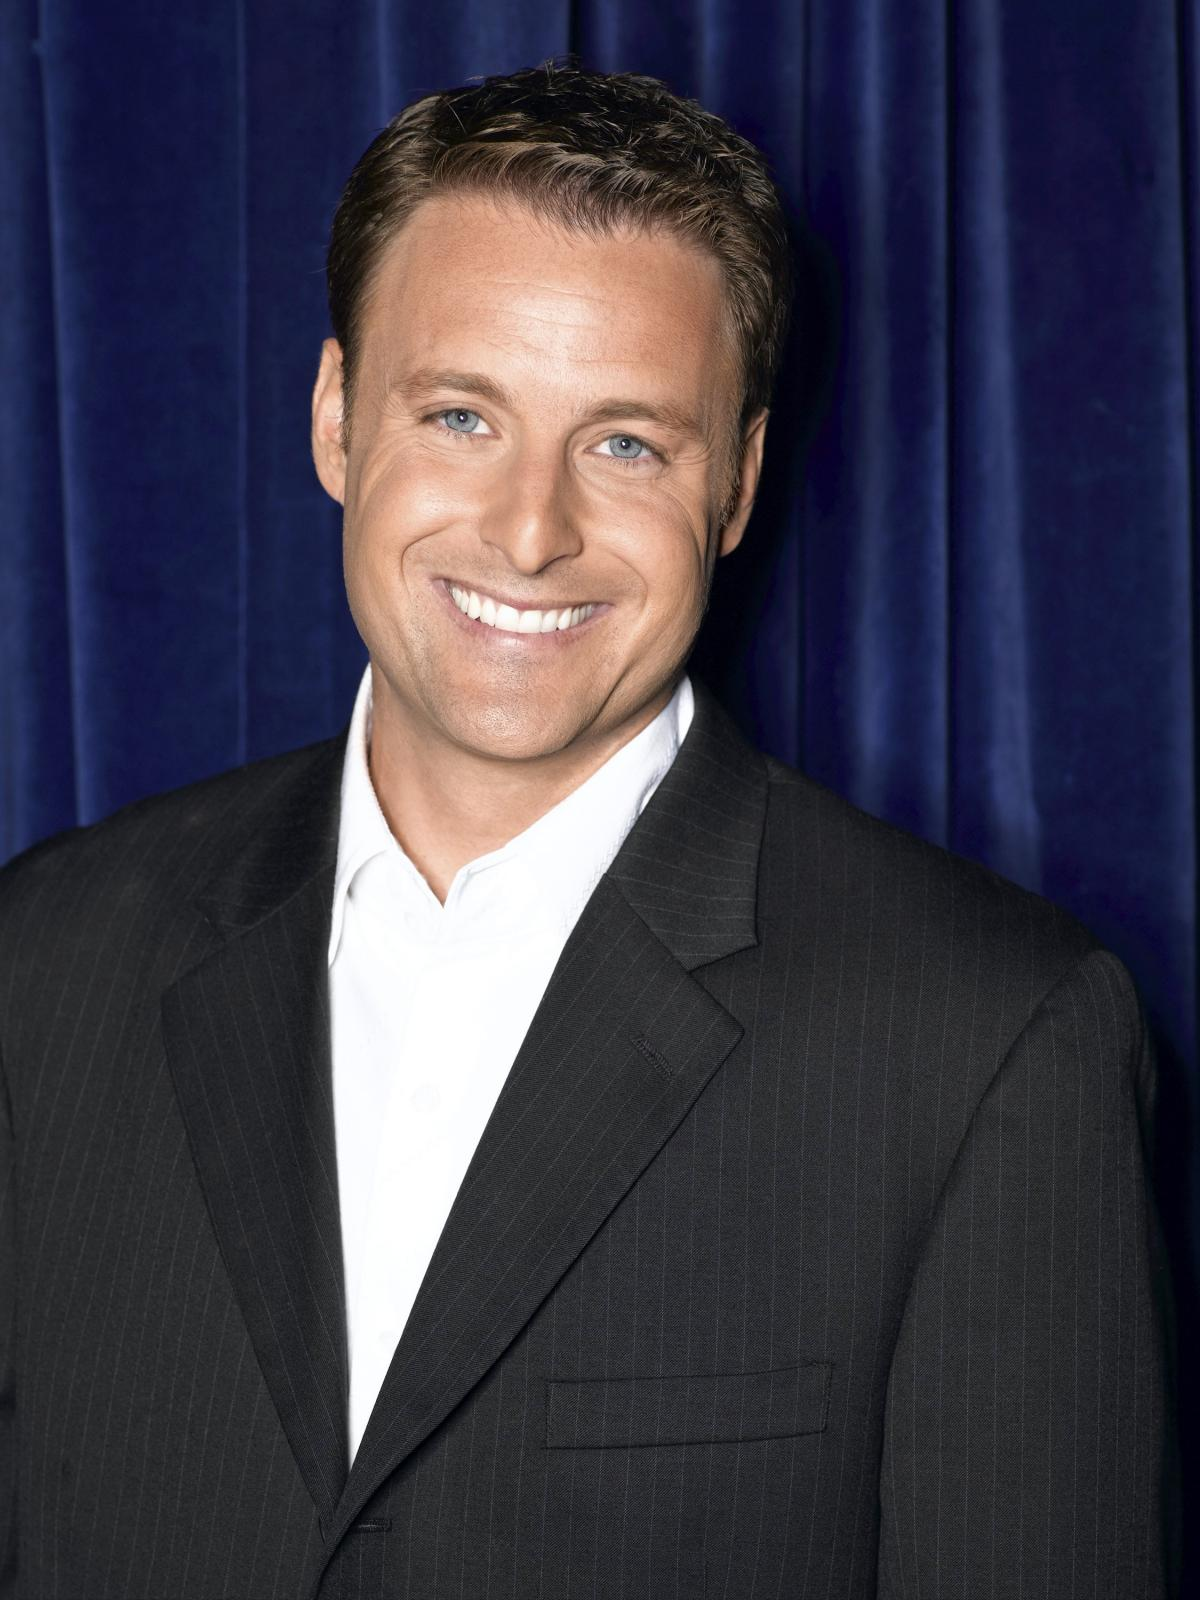 Chris Harrison has hosted ABC's The Bachelor since its premiere in 2002.